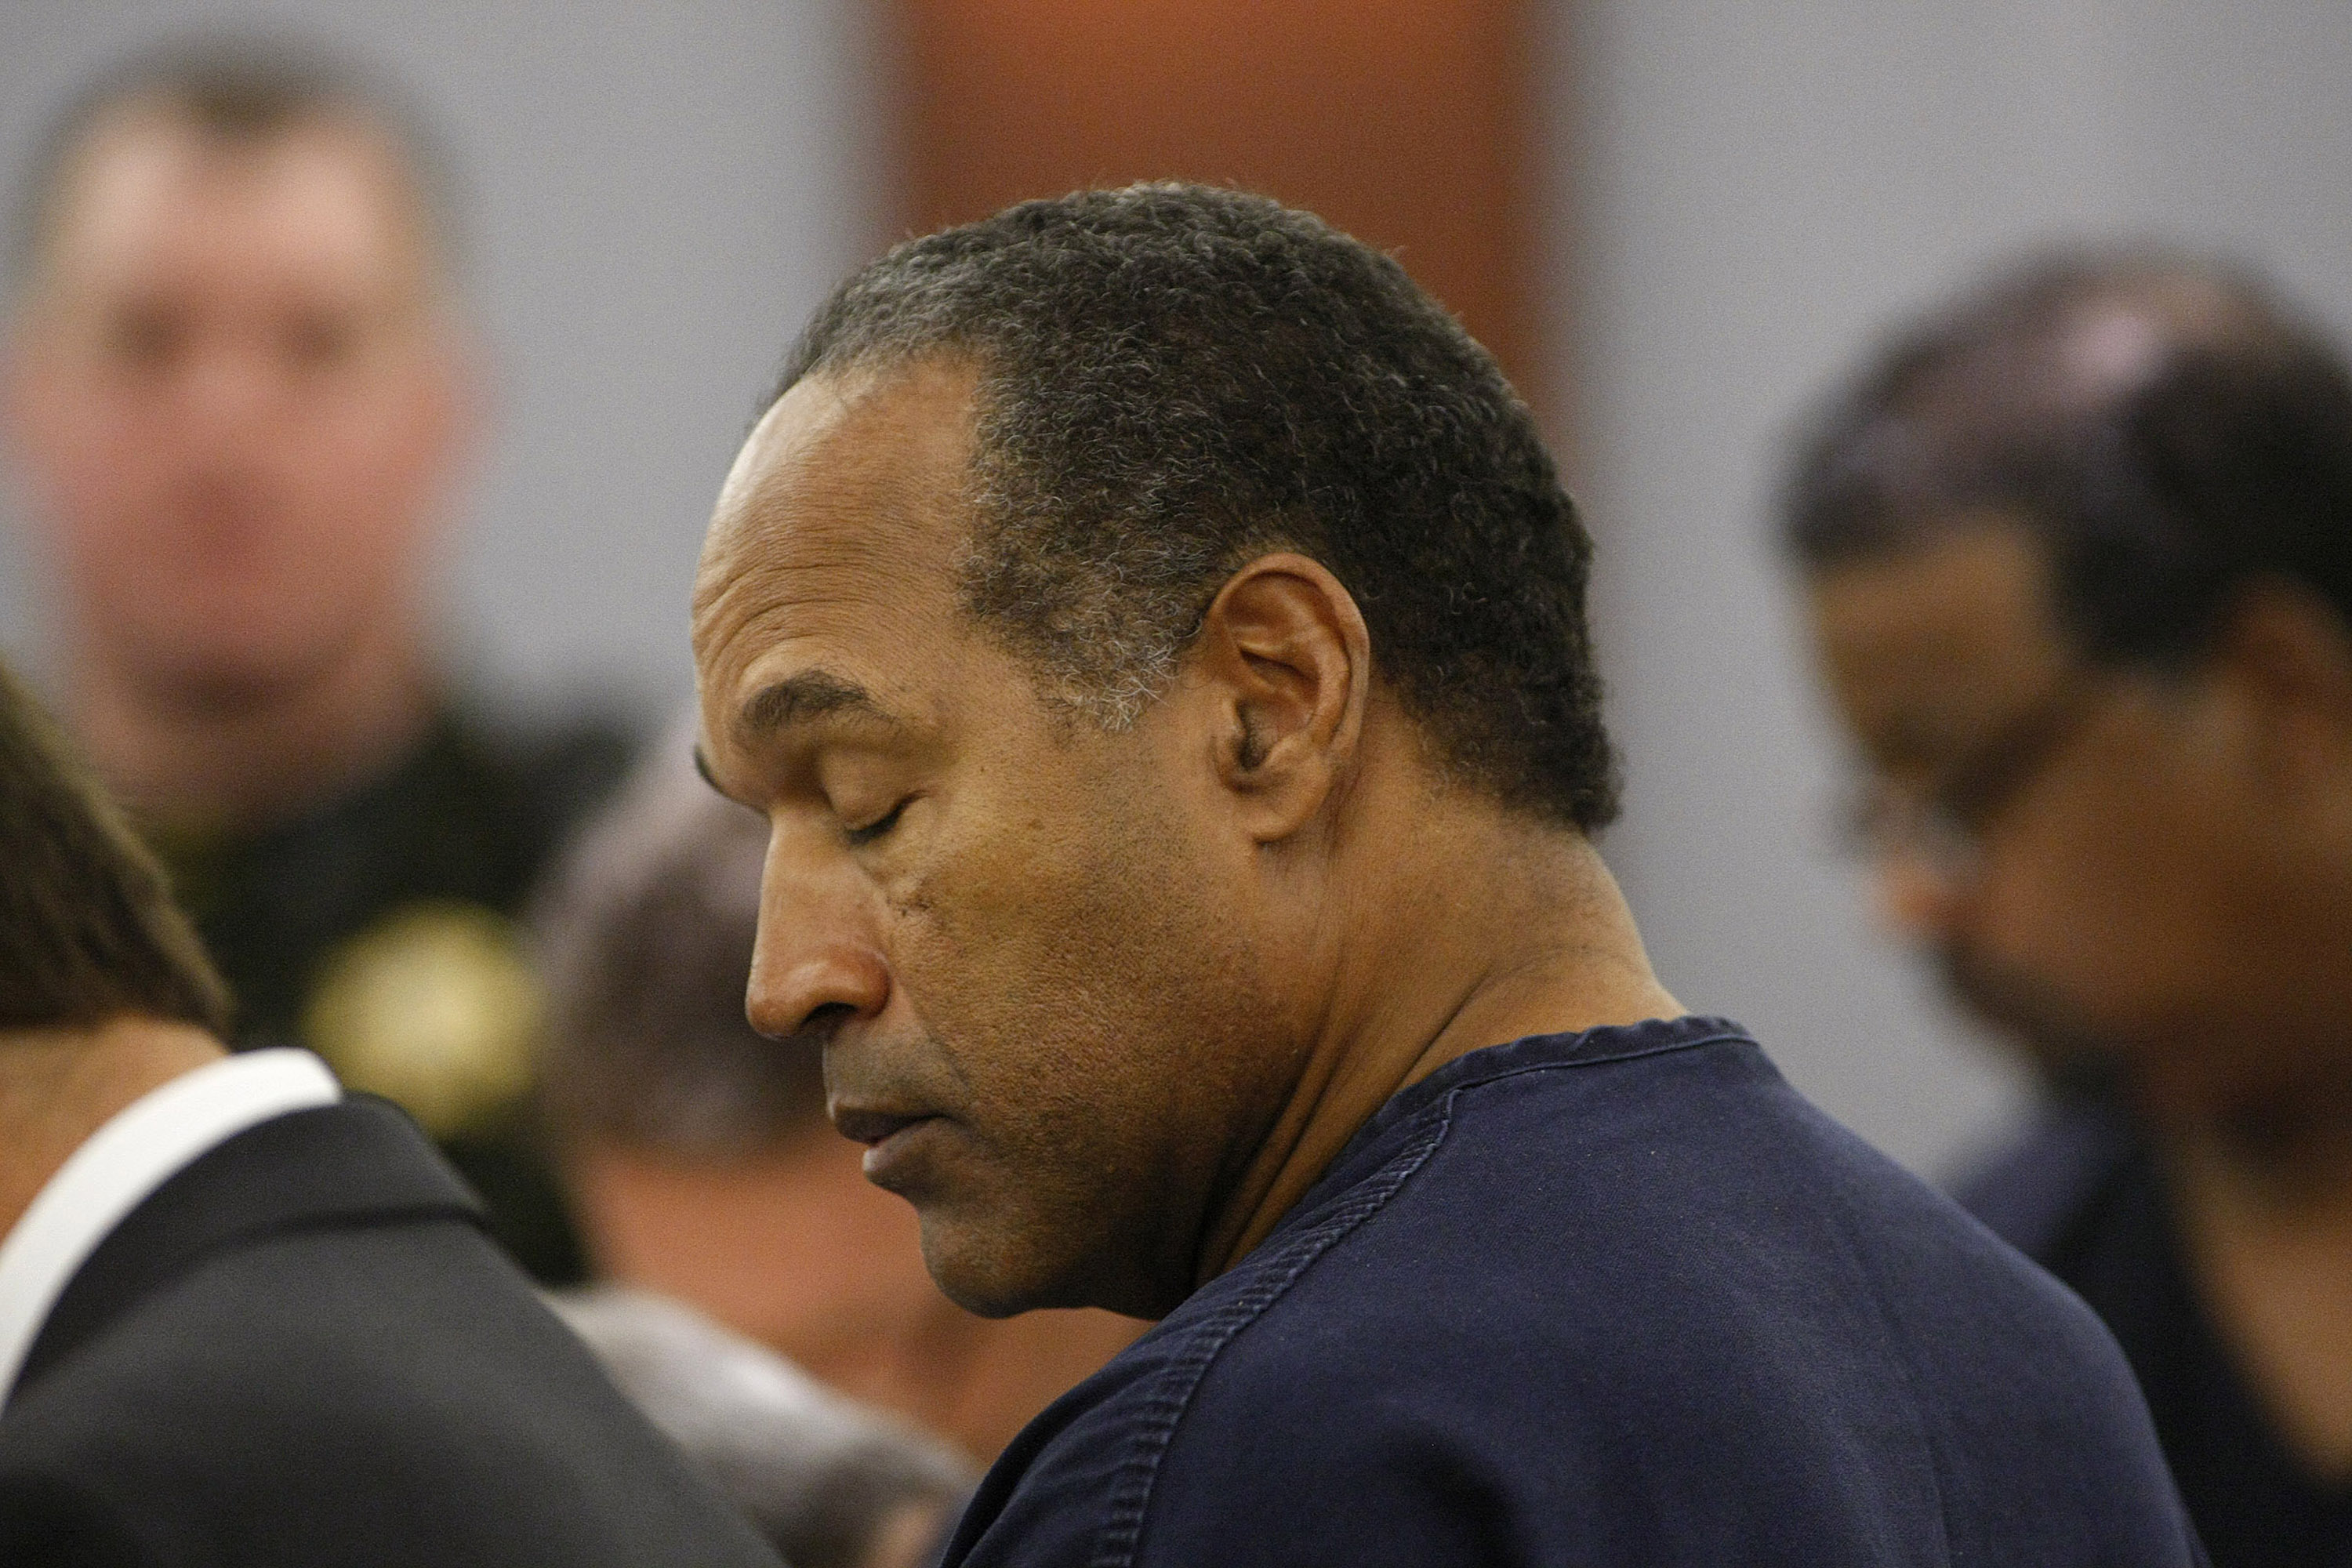 O.J. Simpson epitomizes everything a professional athlete shouldn't do.